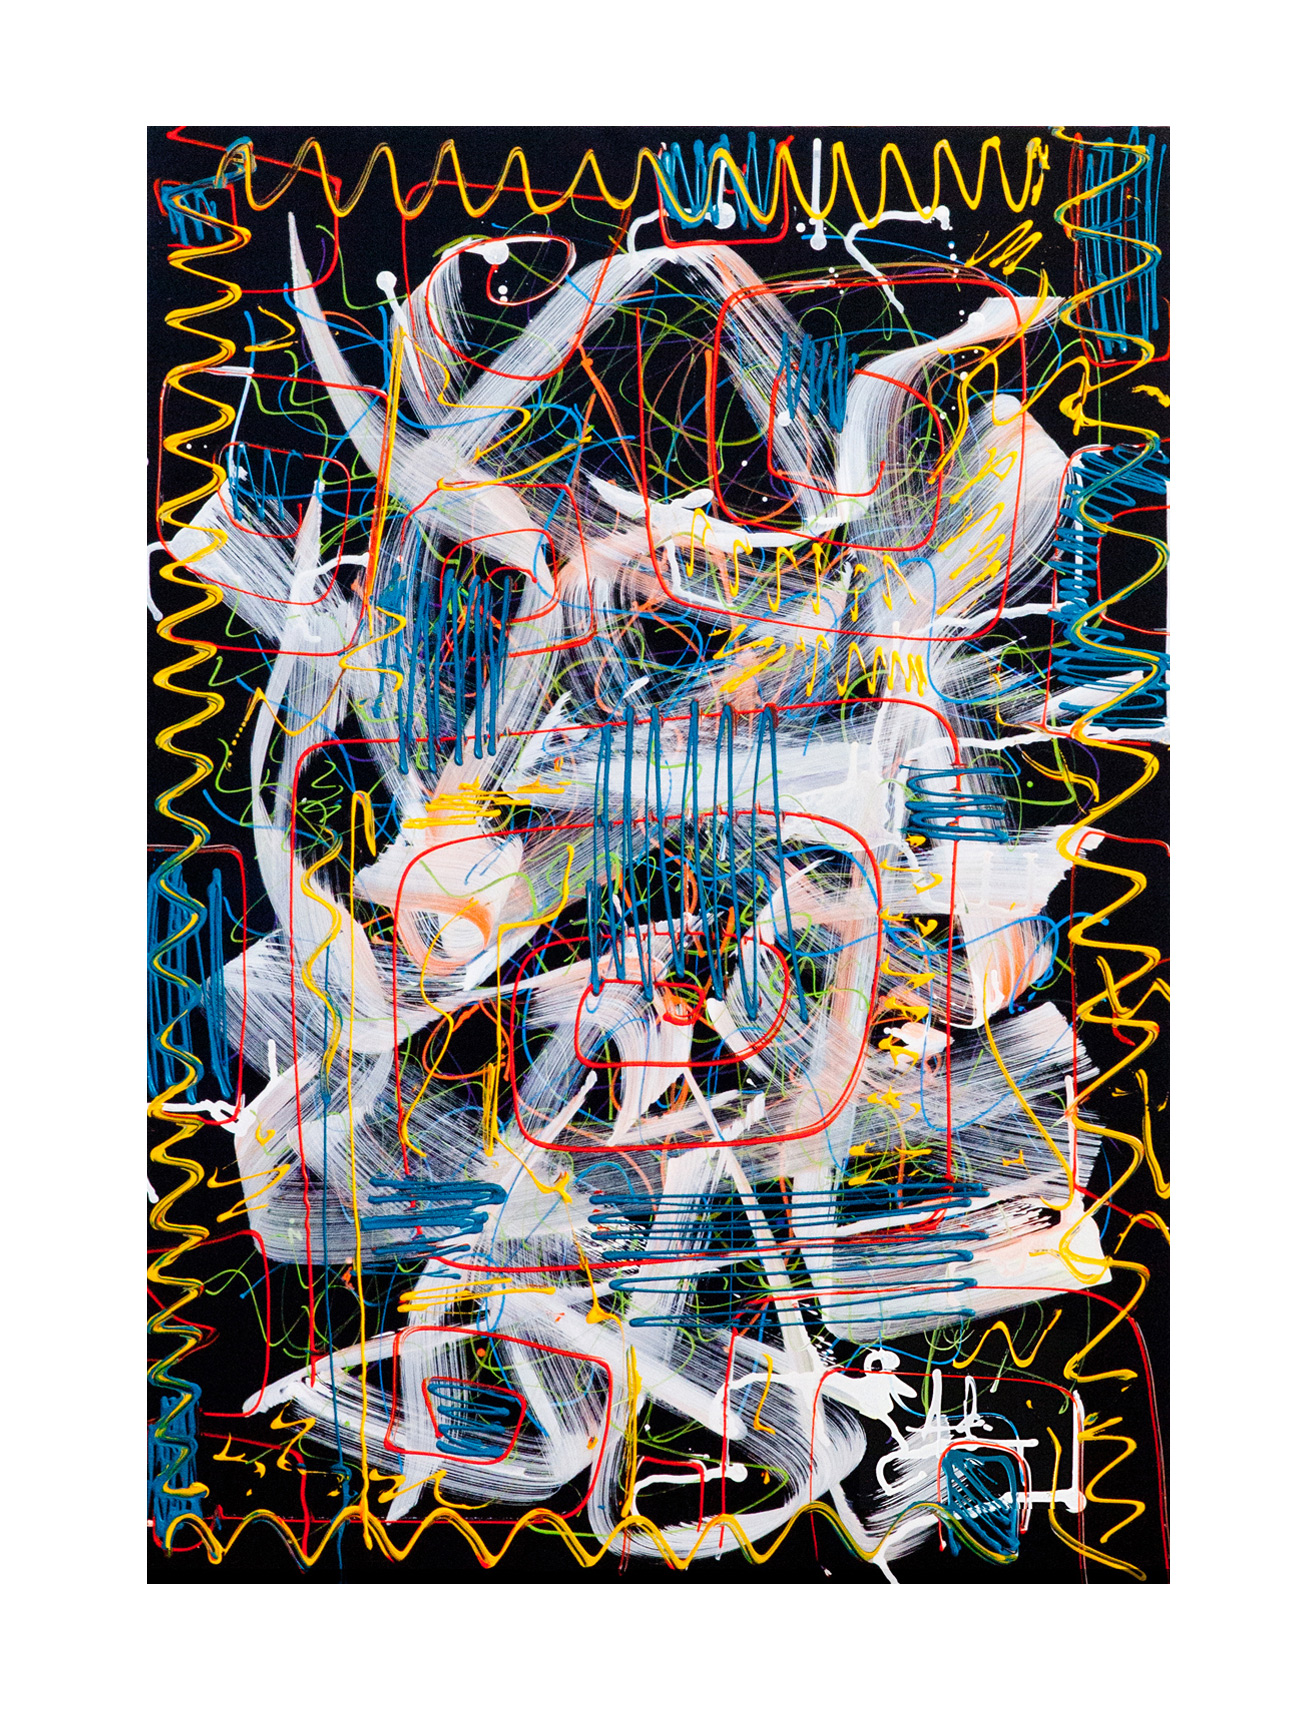 ROB_ADALIERD_PAINTING_ABSTRACT_CONTEMPORARY_ART_VIENNA_10.jpg